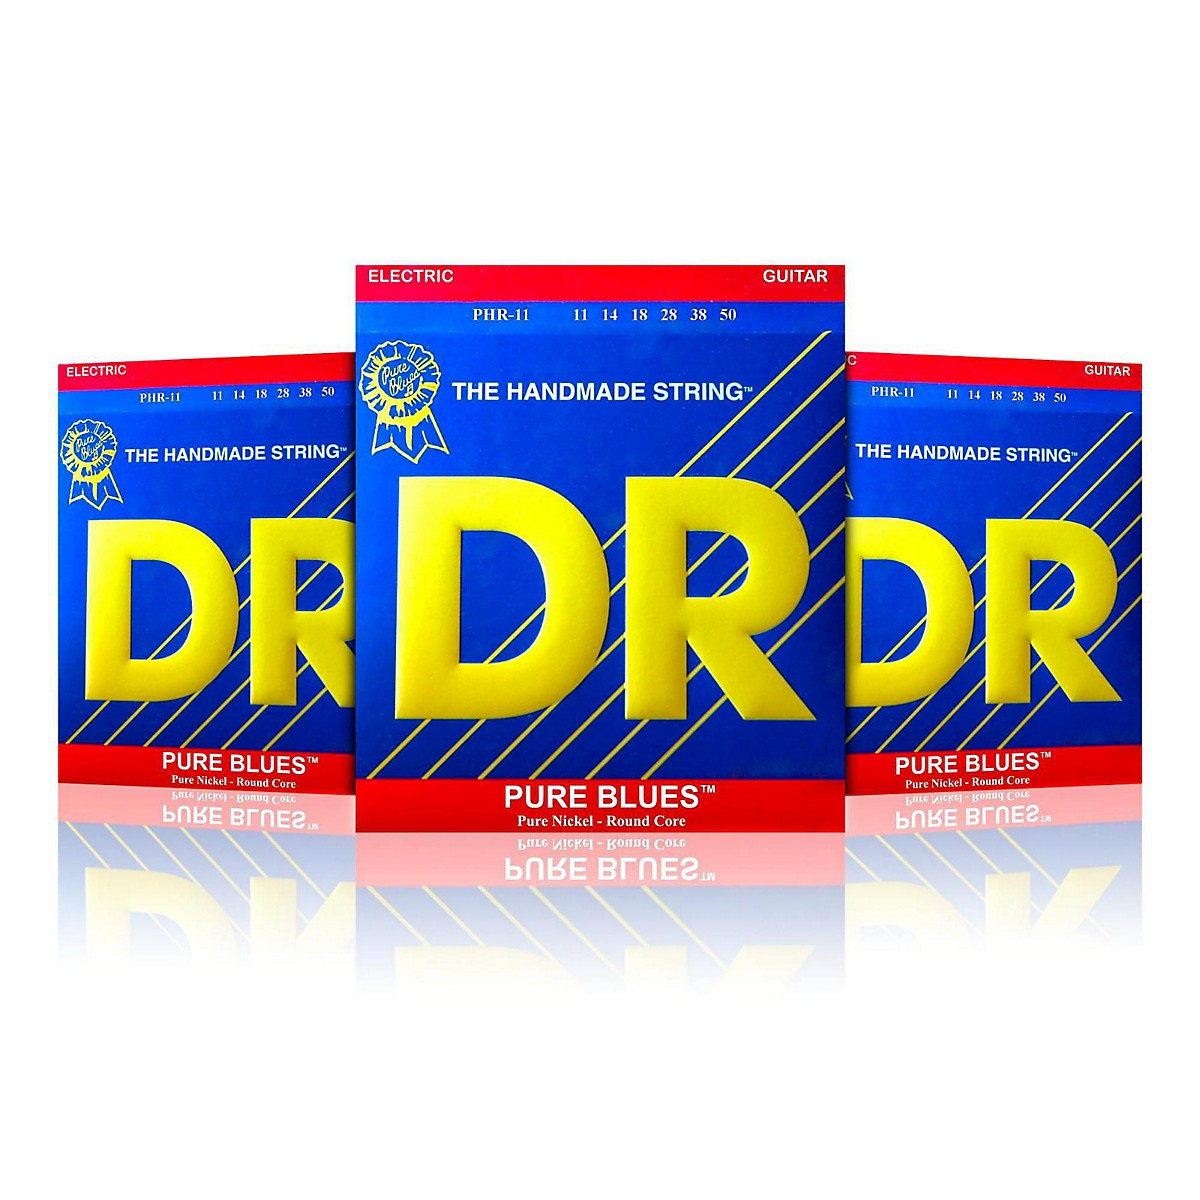 DR Strings PHR-11 Pure Blues Heavy Electric Strings -  Buy Two, Get One Free